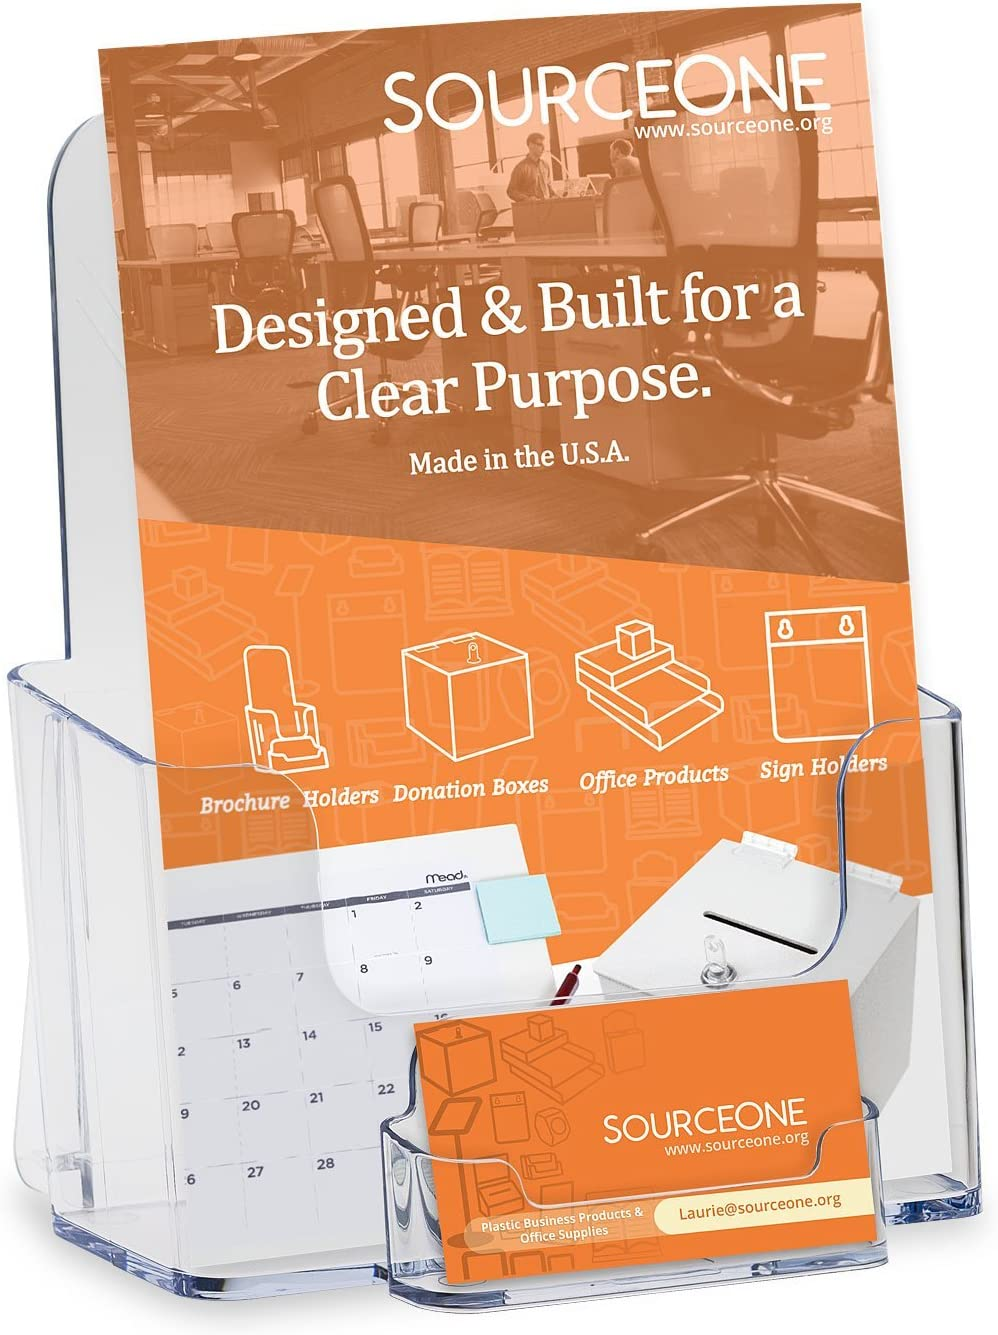 SOURCEONE.ORG Source One Premium Avon/Mary Kay Sized 6-Inch Wide Clear Brochure Holder with Business Card/Gift Card Holder